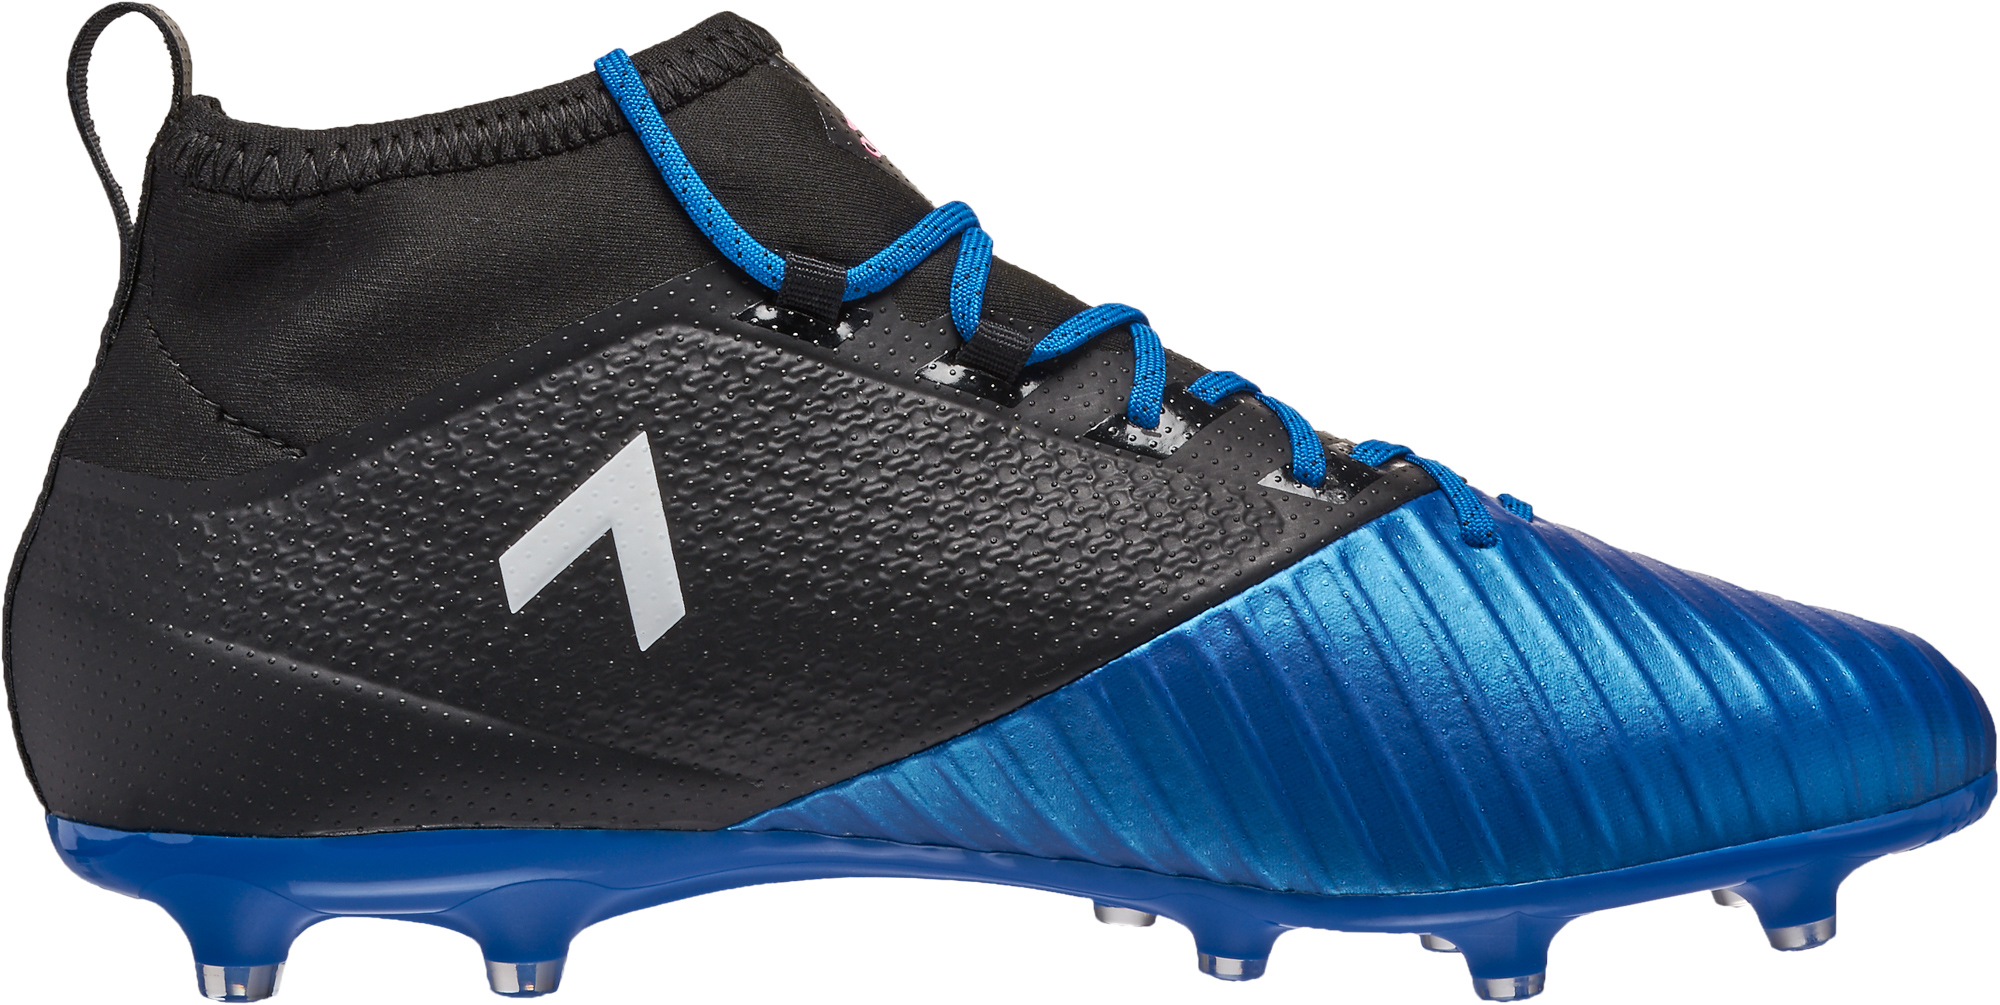 new style 13ed7 a3a78 adidas ACE 17.2 Primemesh FG Soccer Cleats - Black & Blue ...